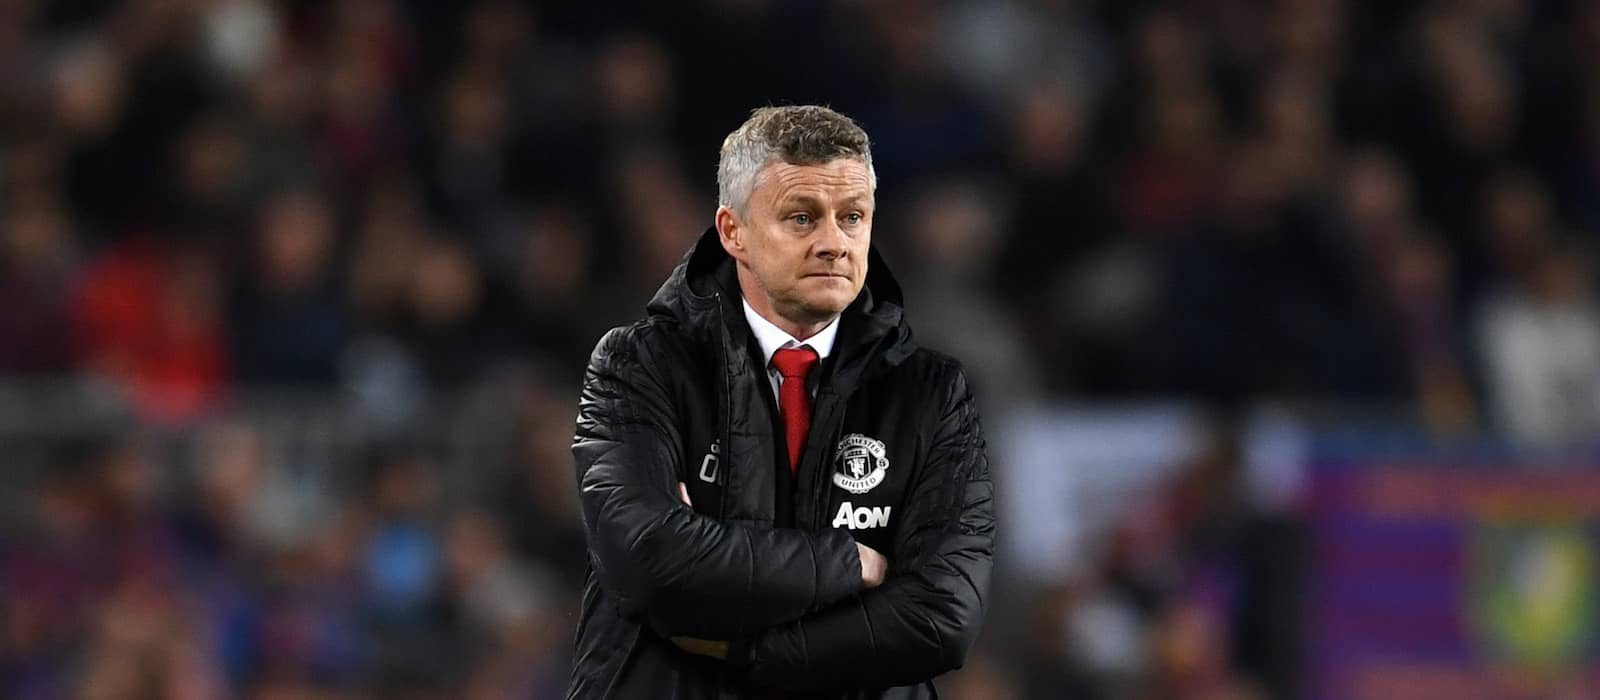 Ole Gunnar Solskjaer adamant on Manchester United's want-away stars